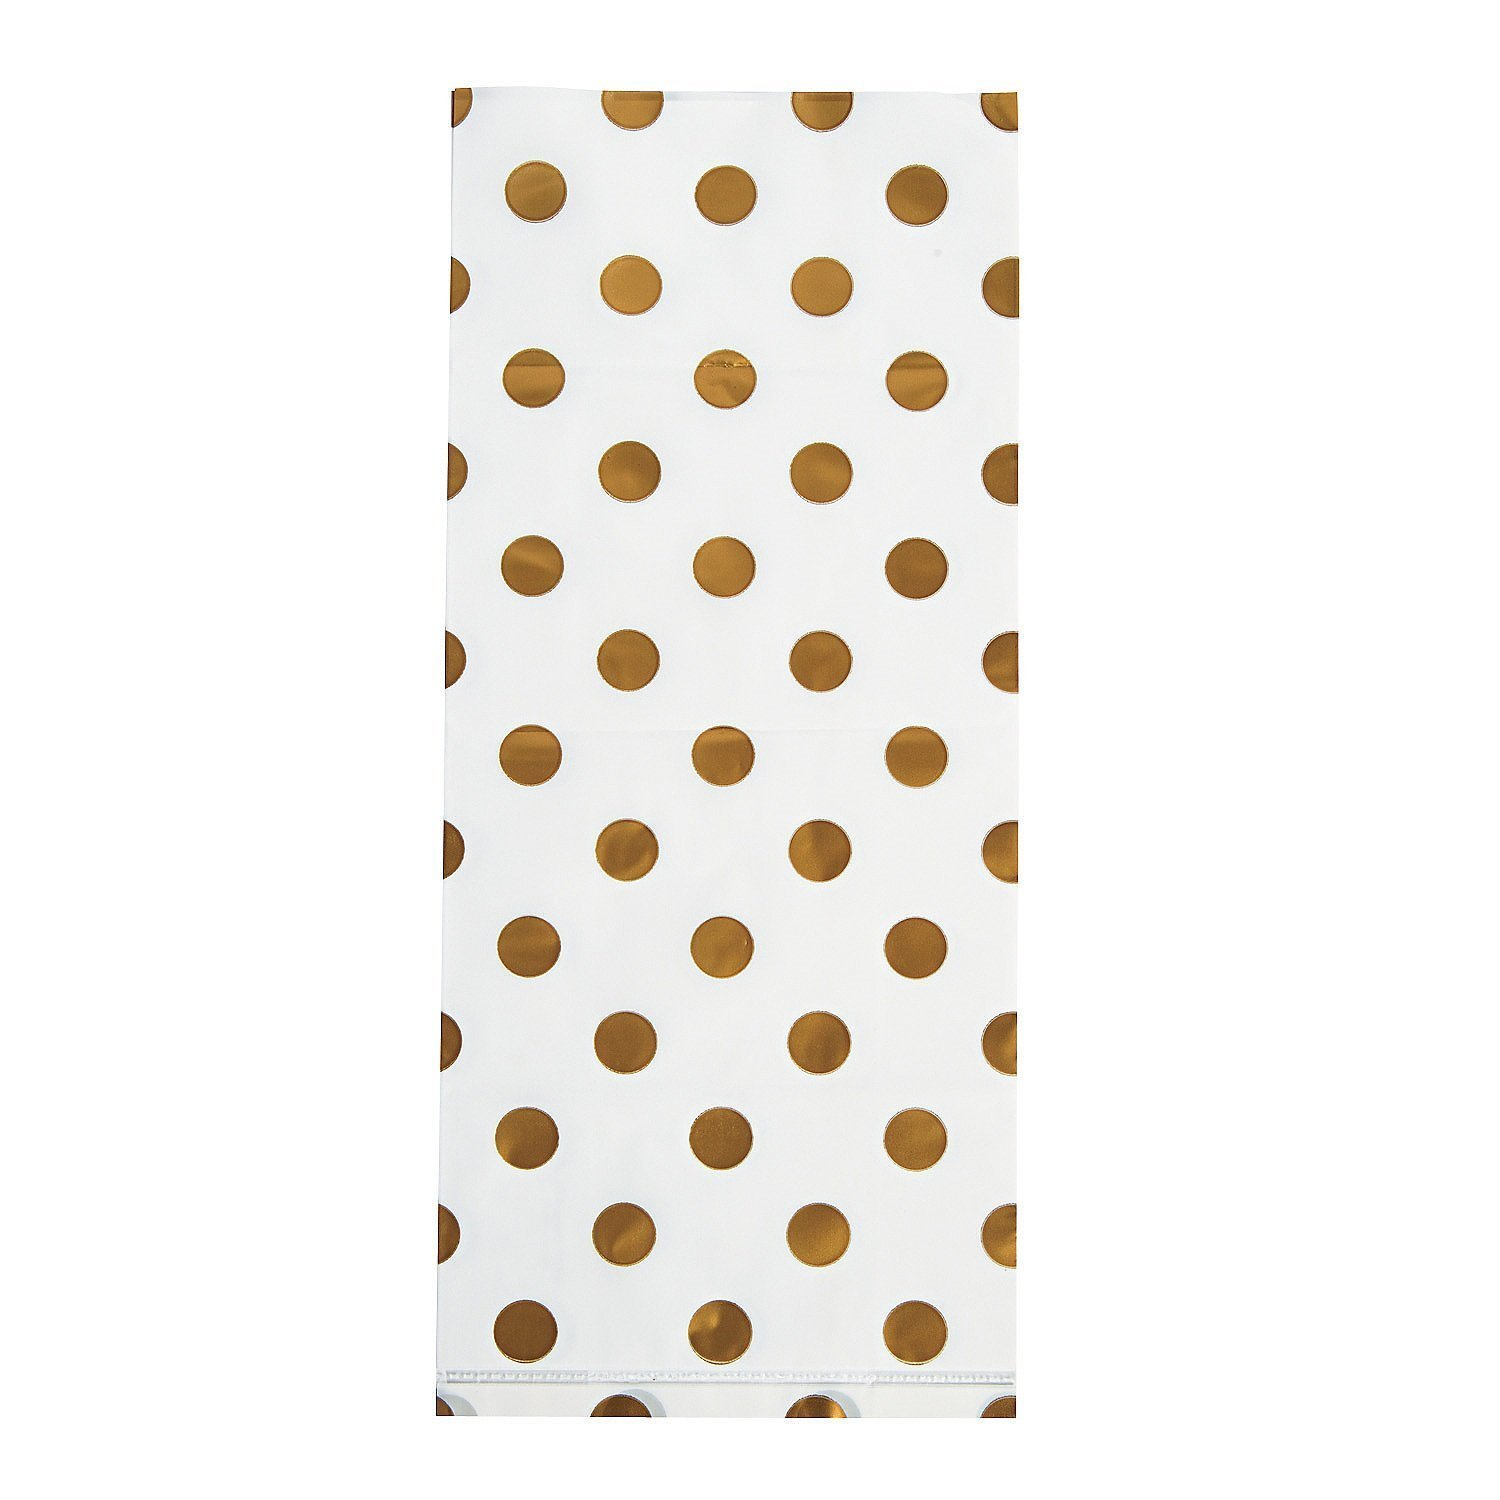 Amazon.com: Gold Polka Dot Cellophane Bags, Pack of 60 Goodie Treat ...